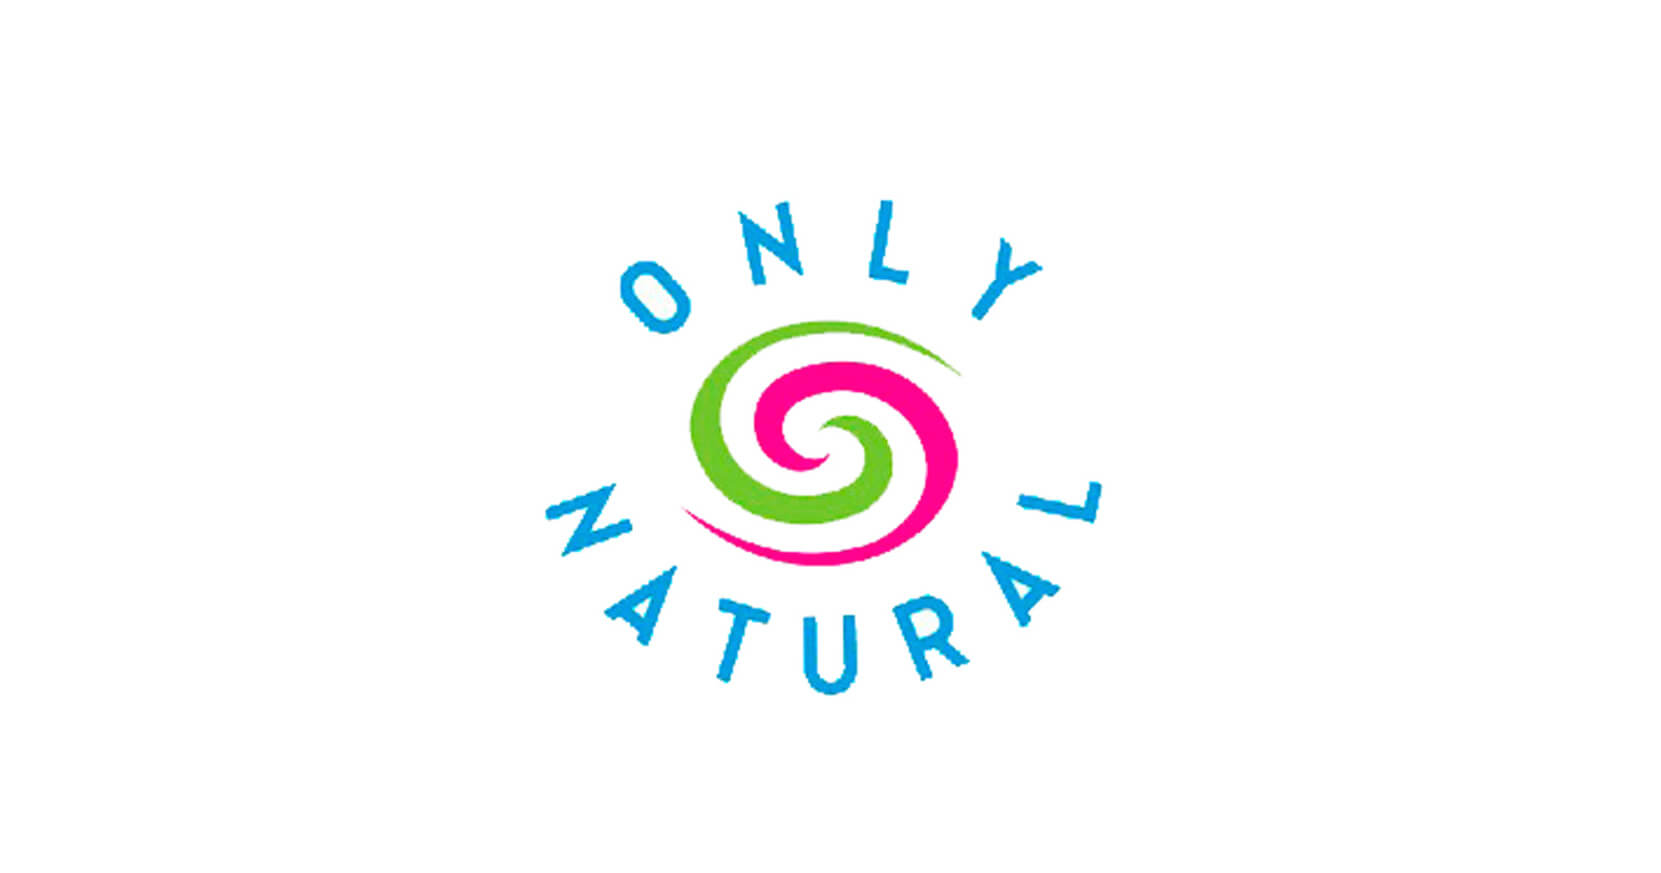 Only Natural - Het nieuwe fairtrade merk bij My Lovely Notebook